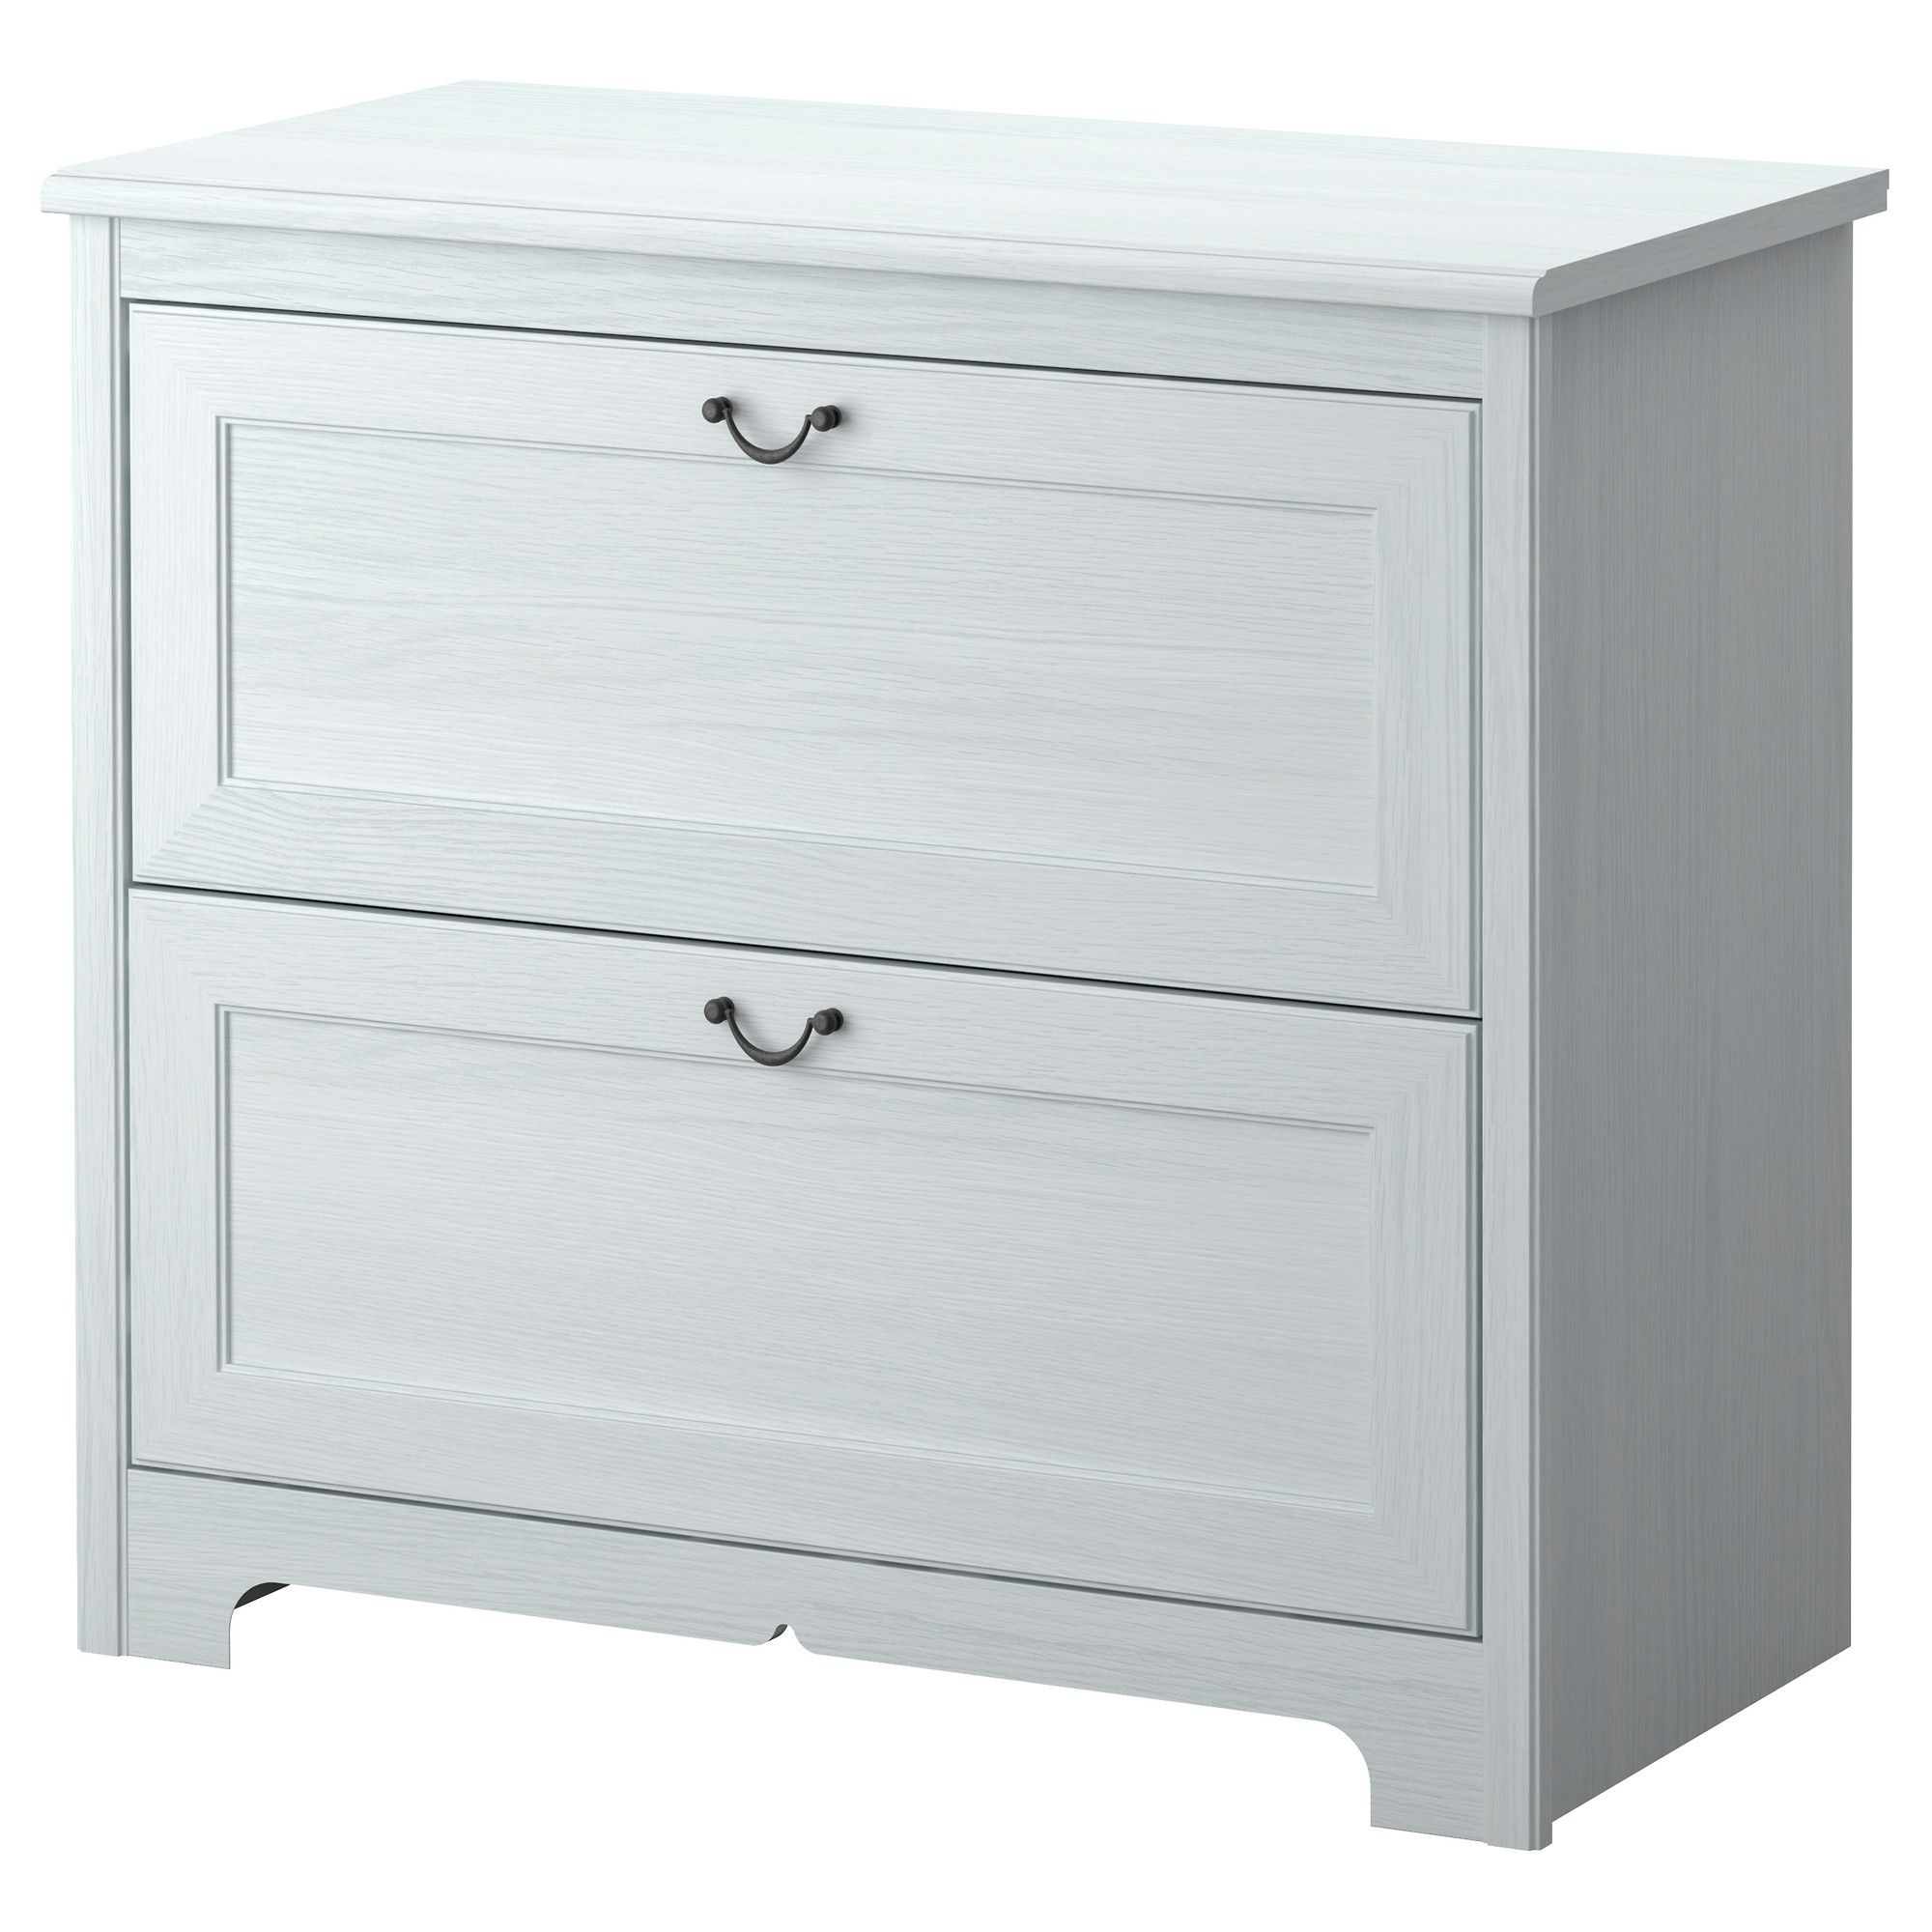 Ikea bedroom furniture chest of drawers - Chest With 2 Drawers Ikea I M Thinking This Will Be